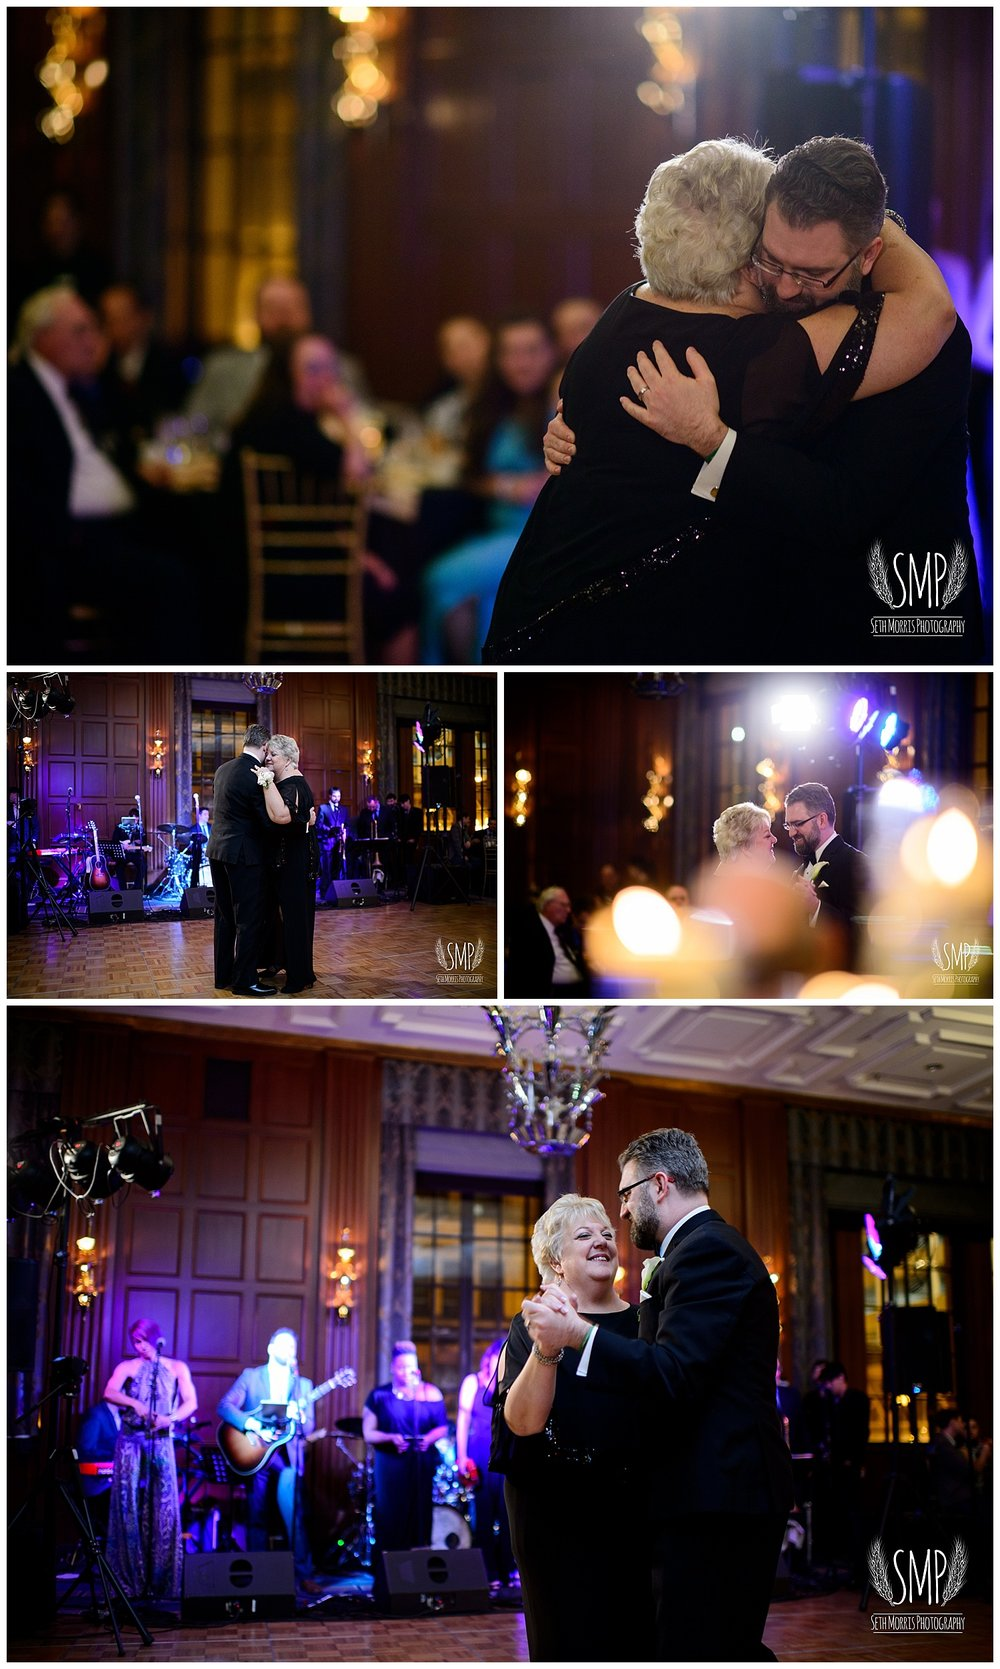 chicago-wedding-pictures-del-strada-hotel-allegro-131.jpg